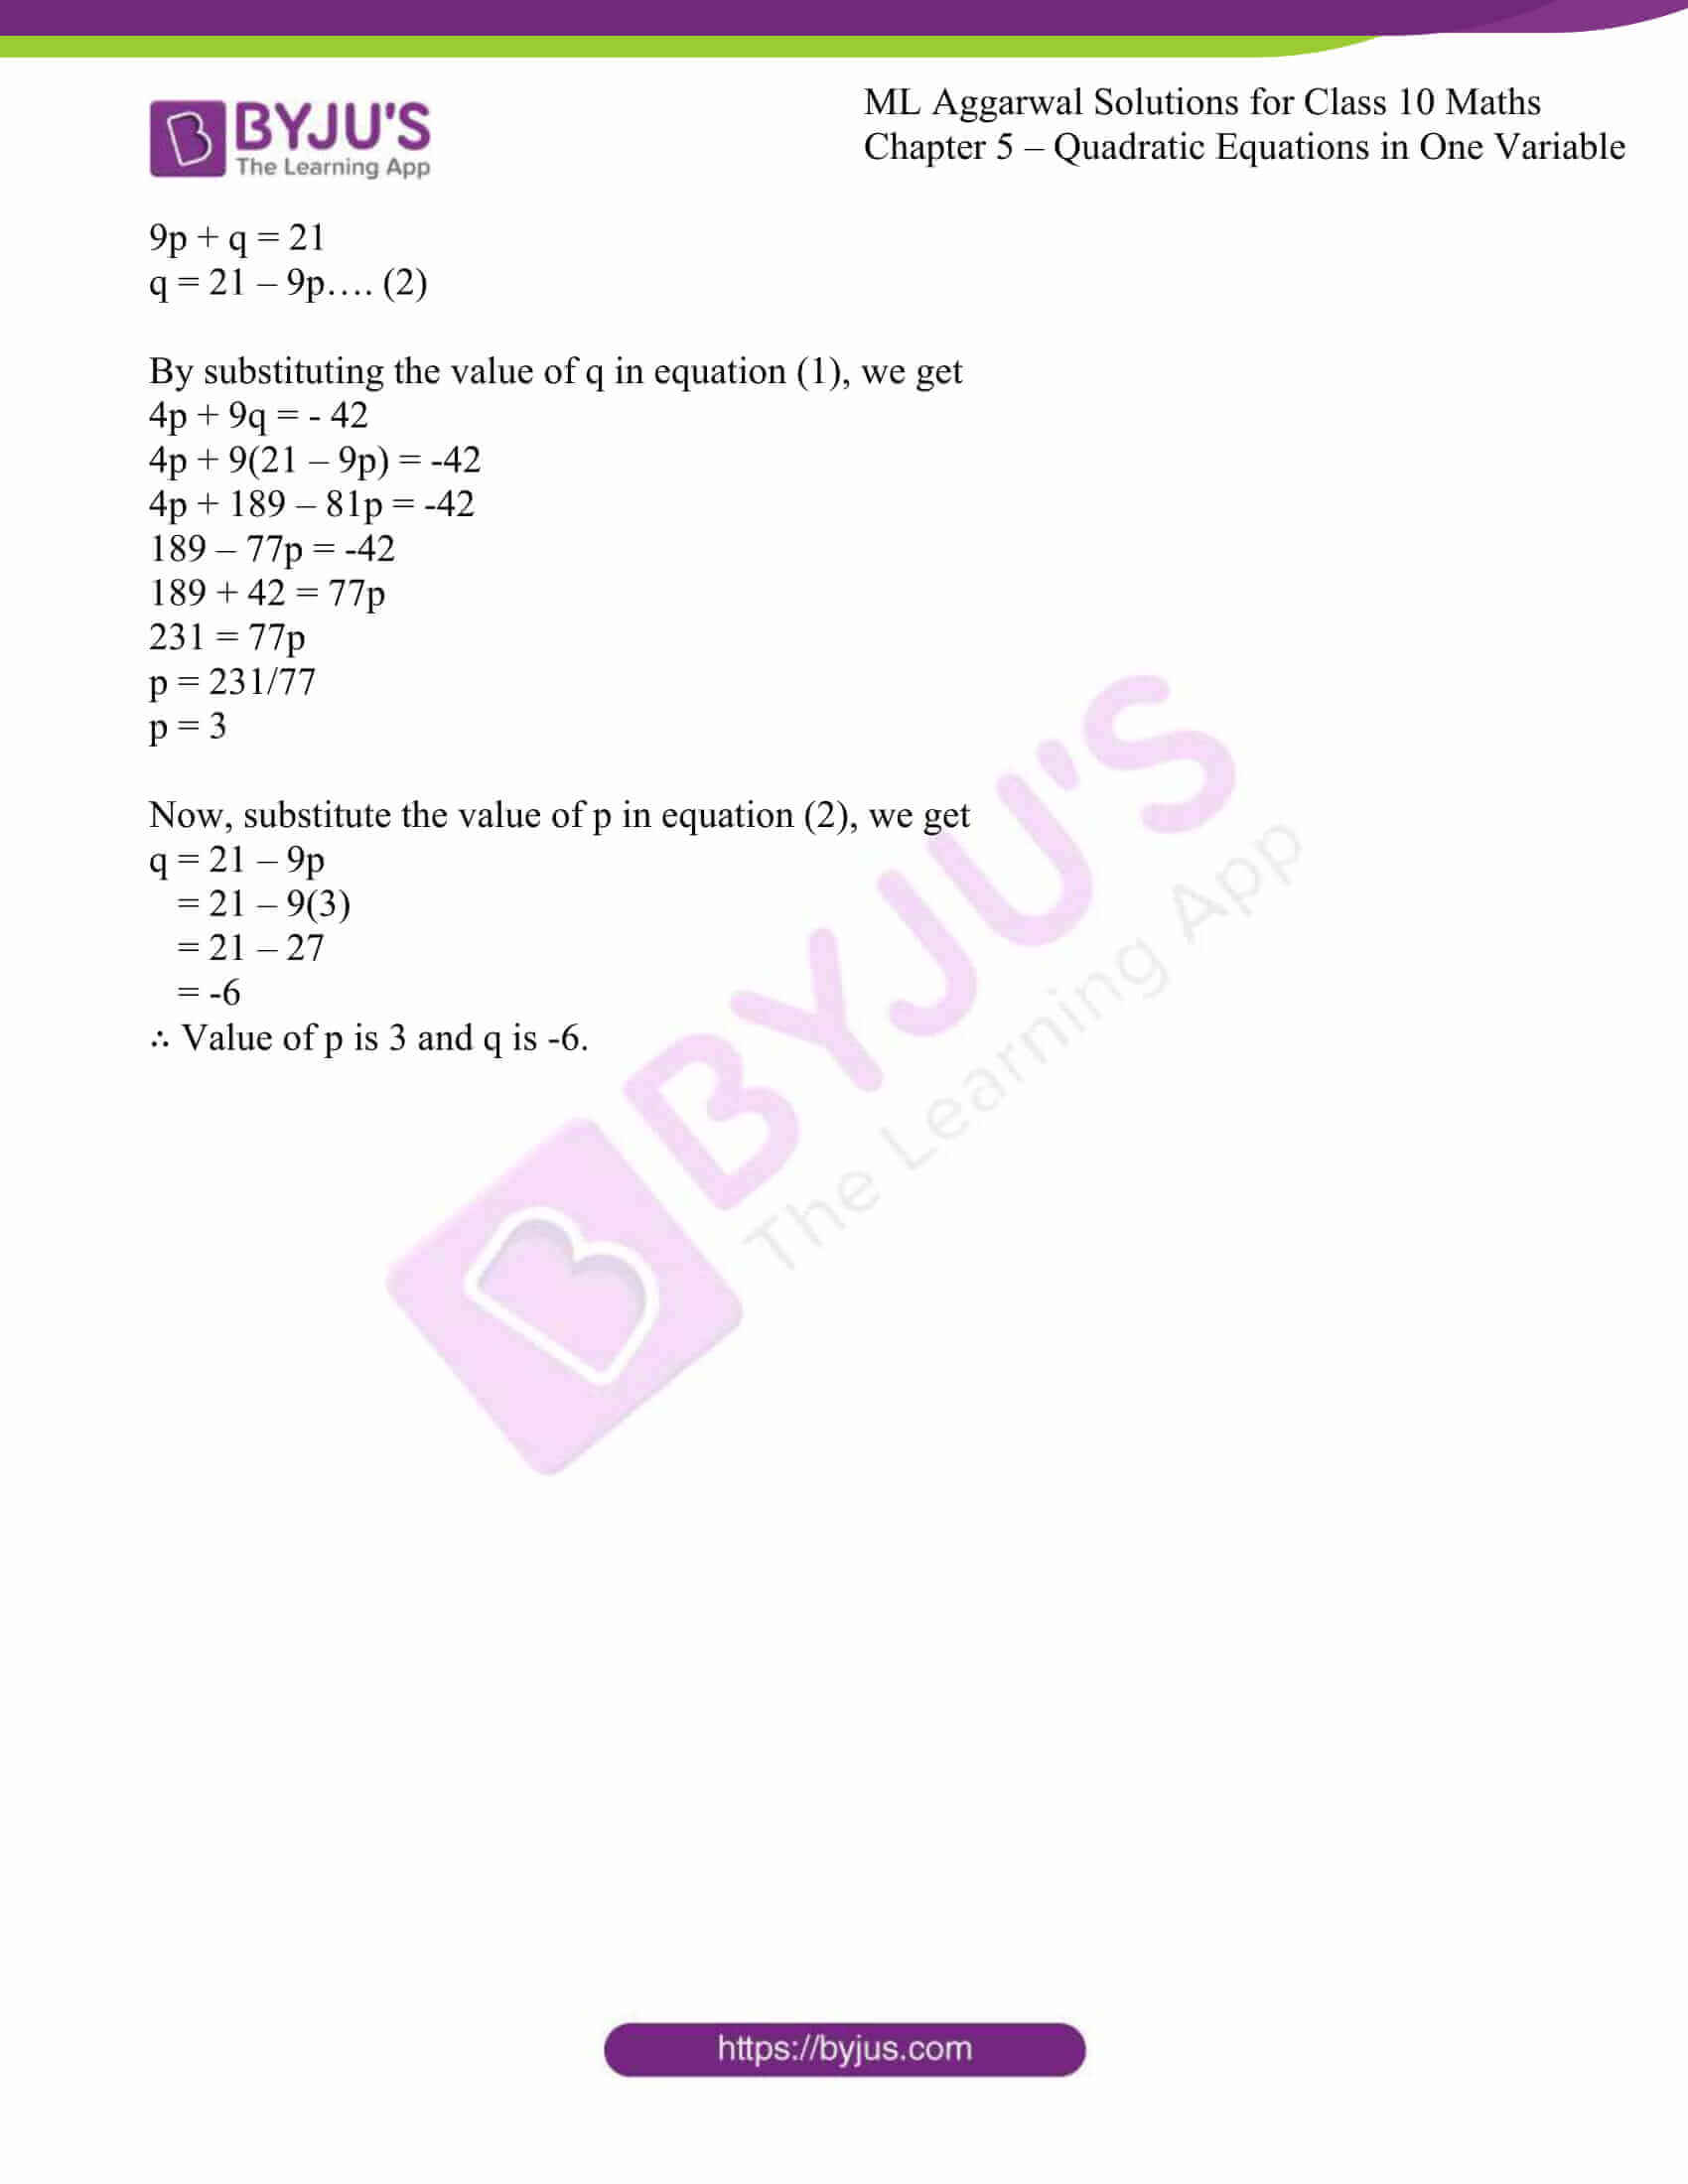 ml aggarwal solutions class 10 maths chapter 5 05